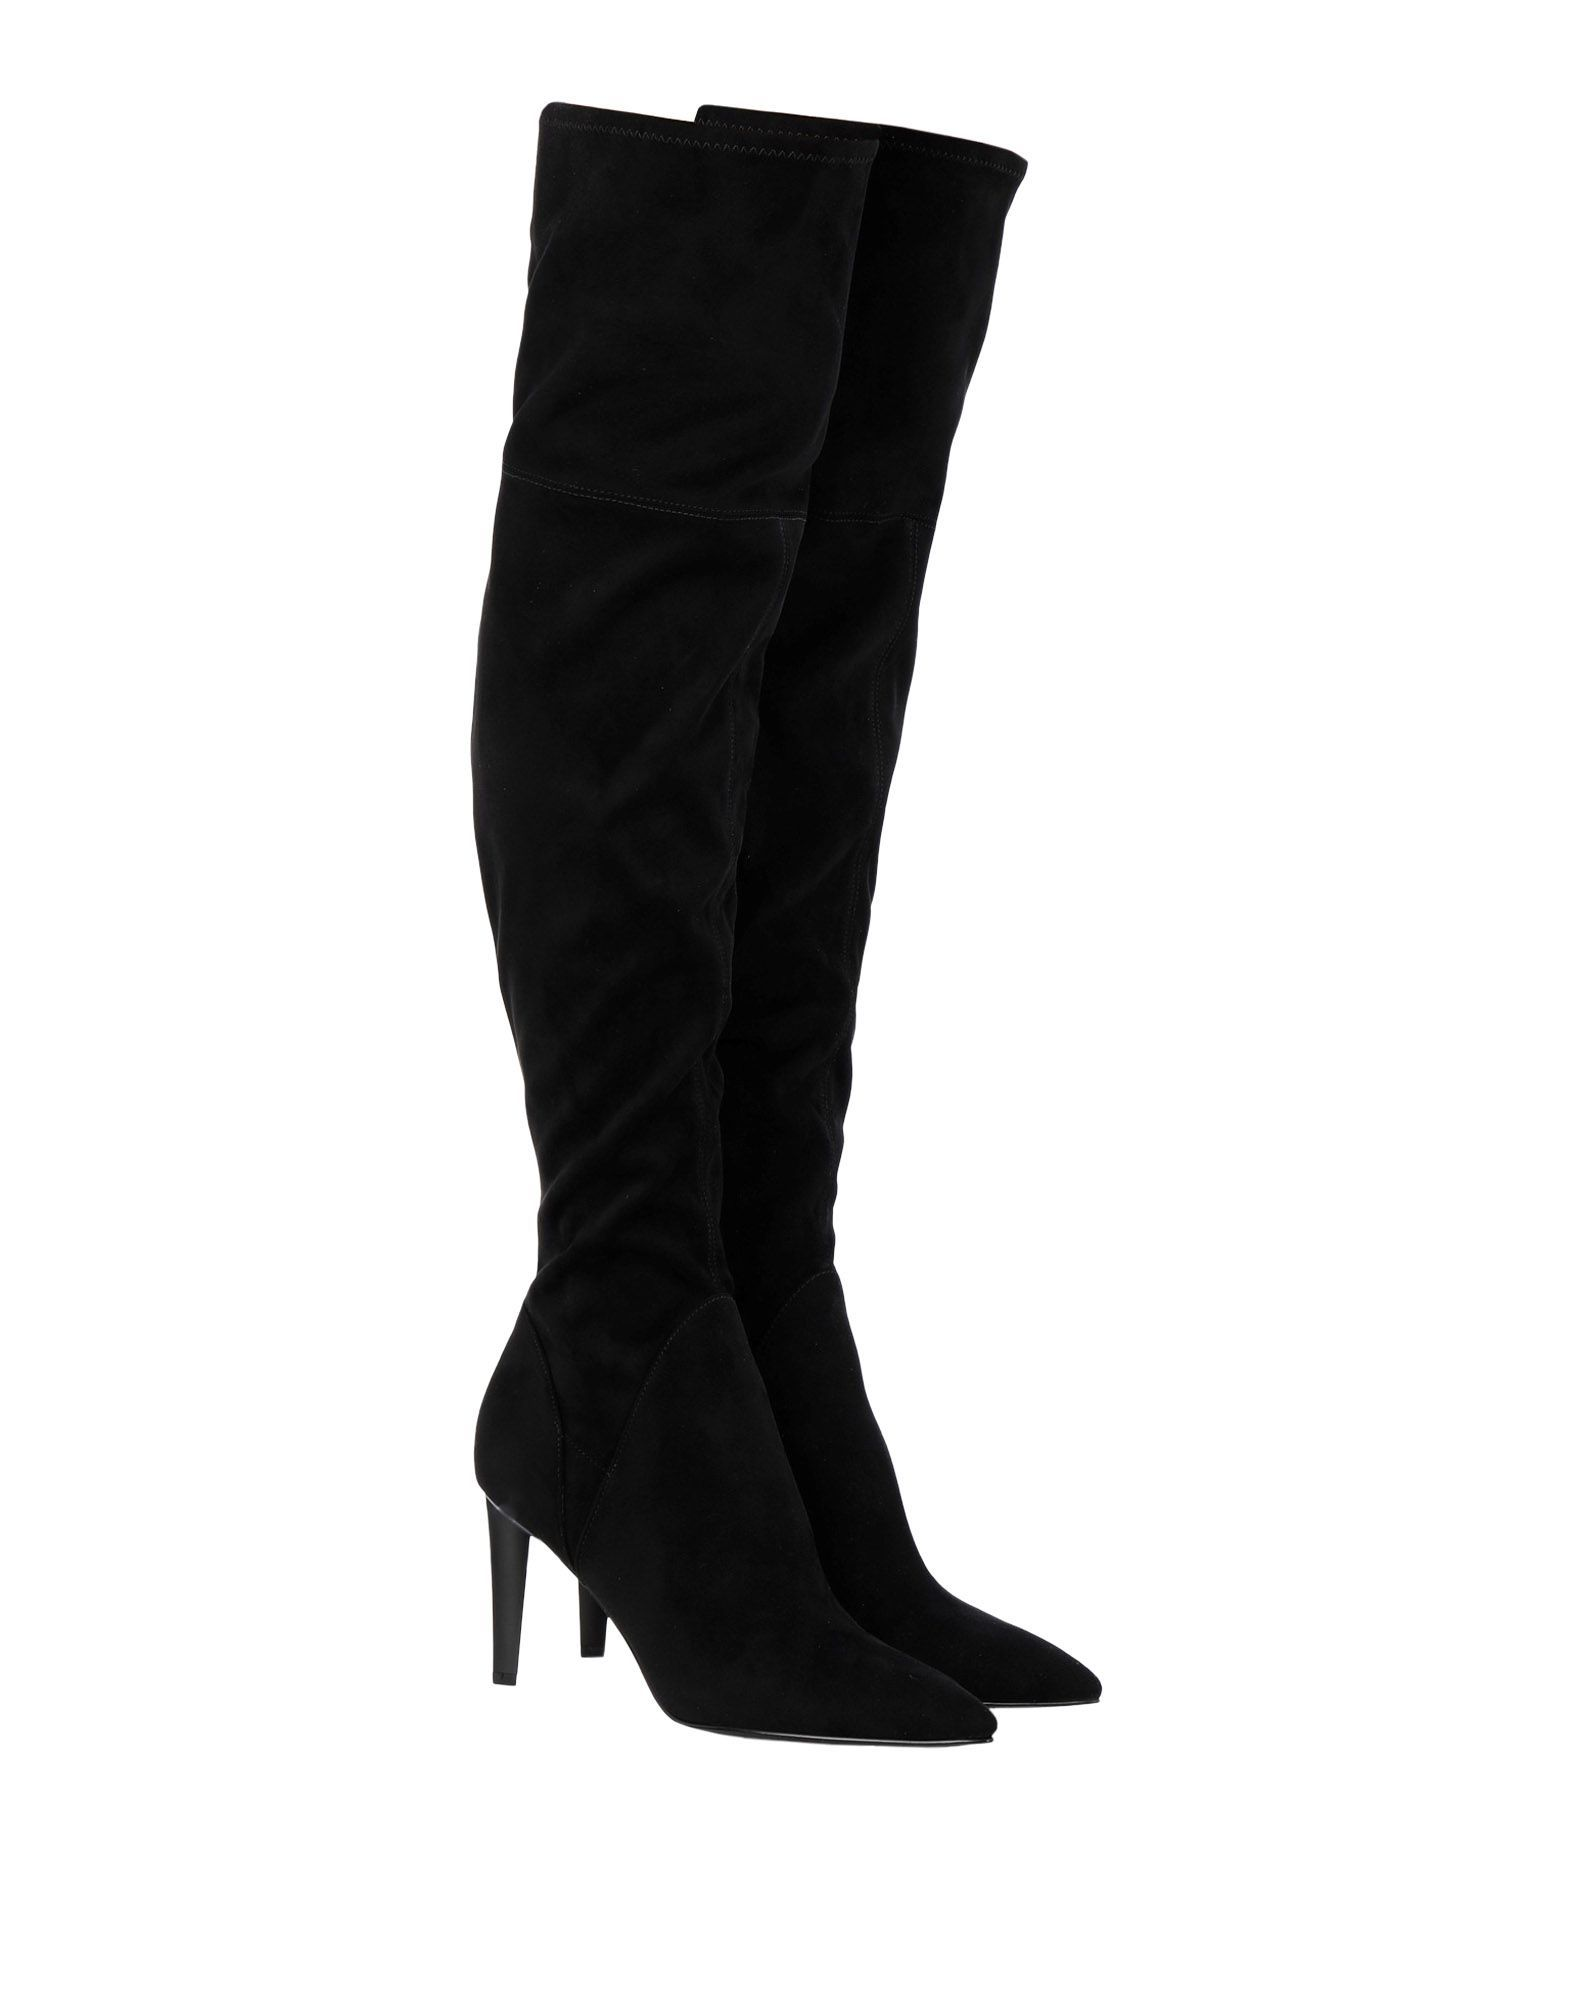 Kendall + Kylie Black Suede Effect Boots